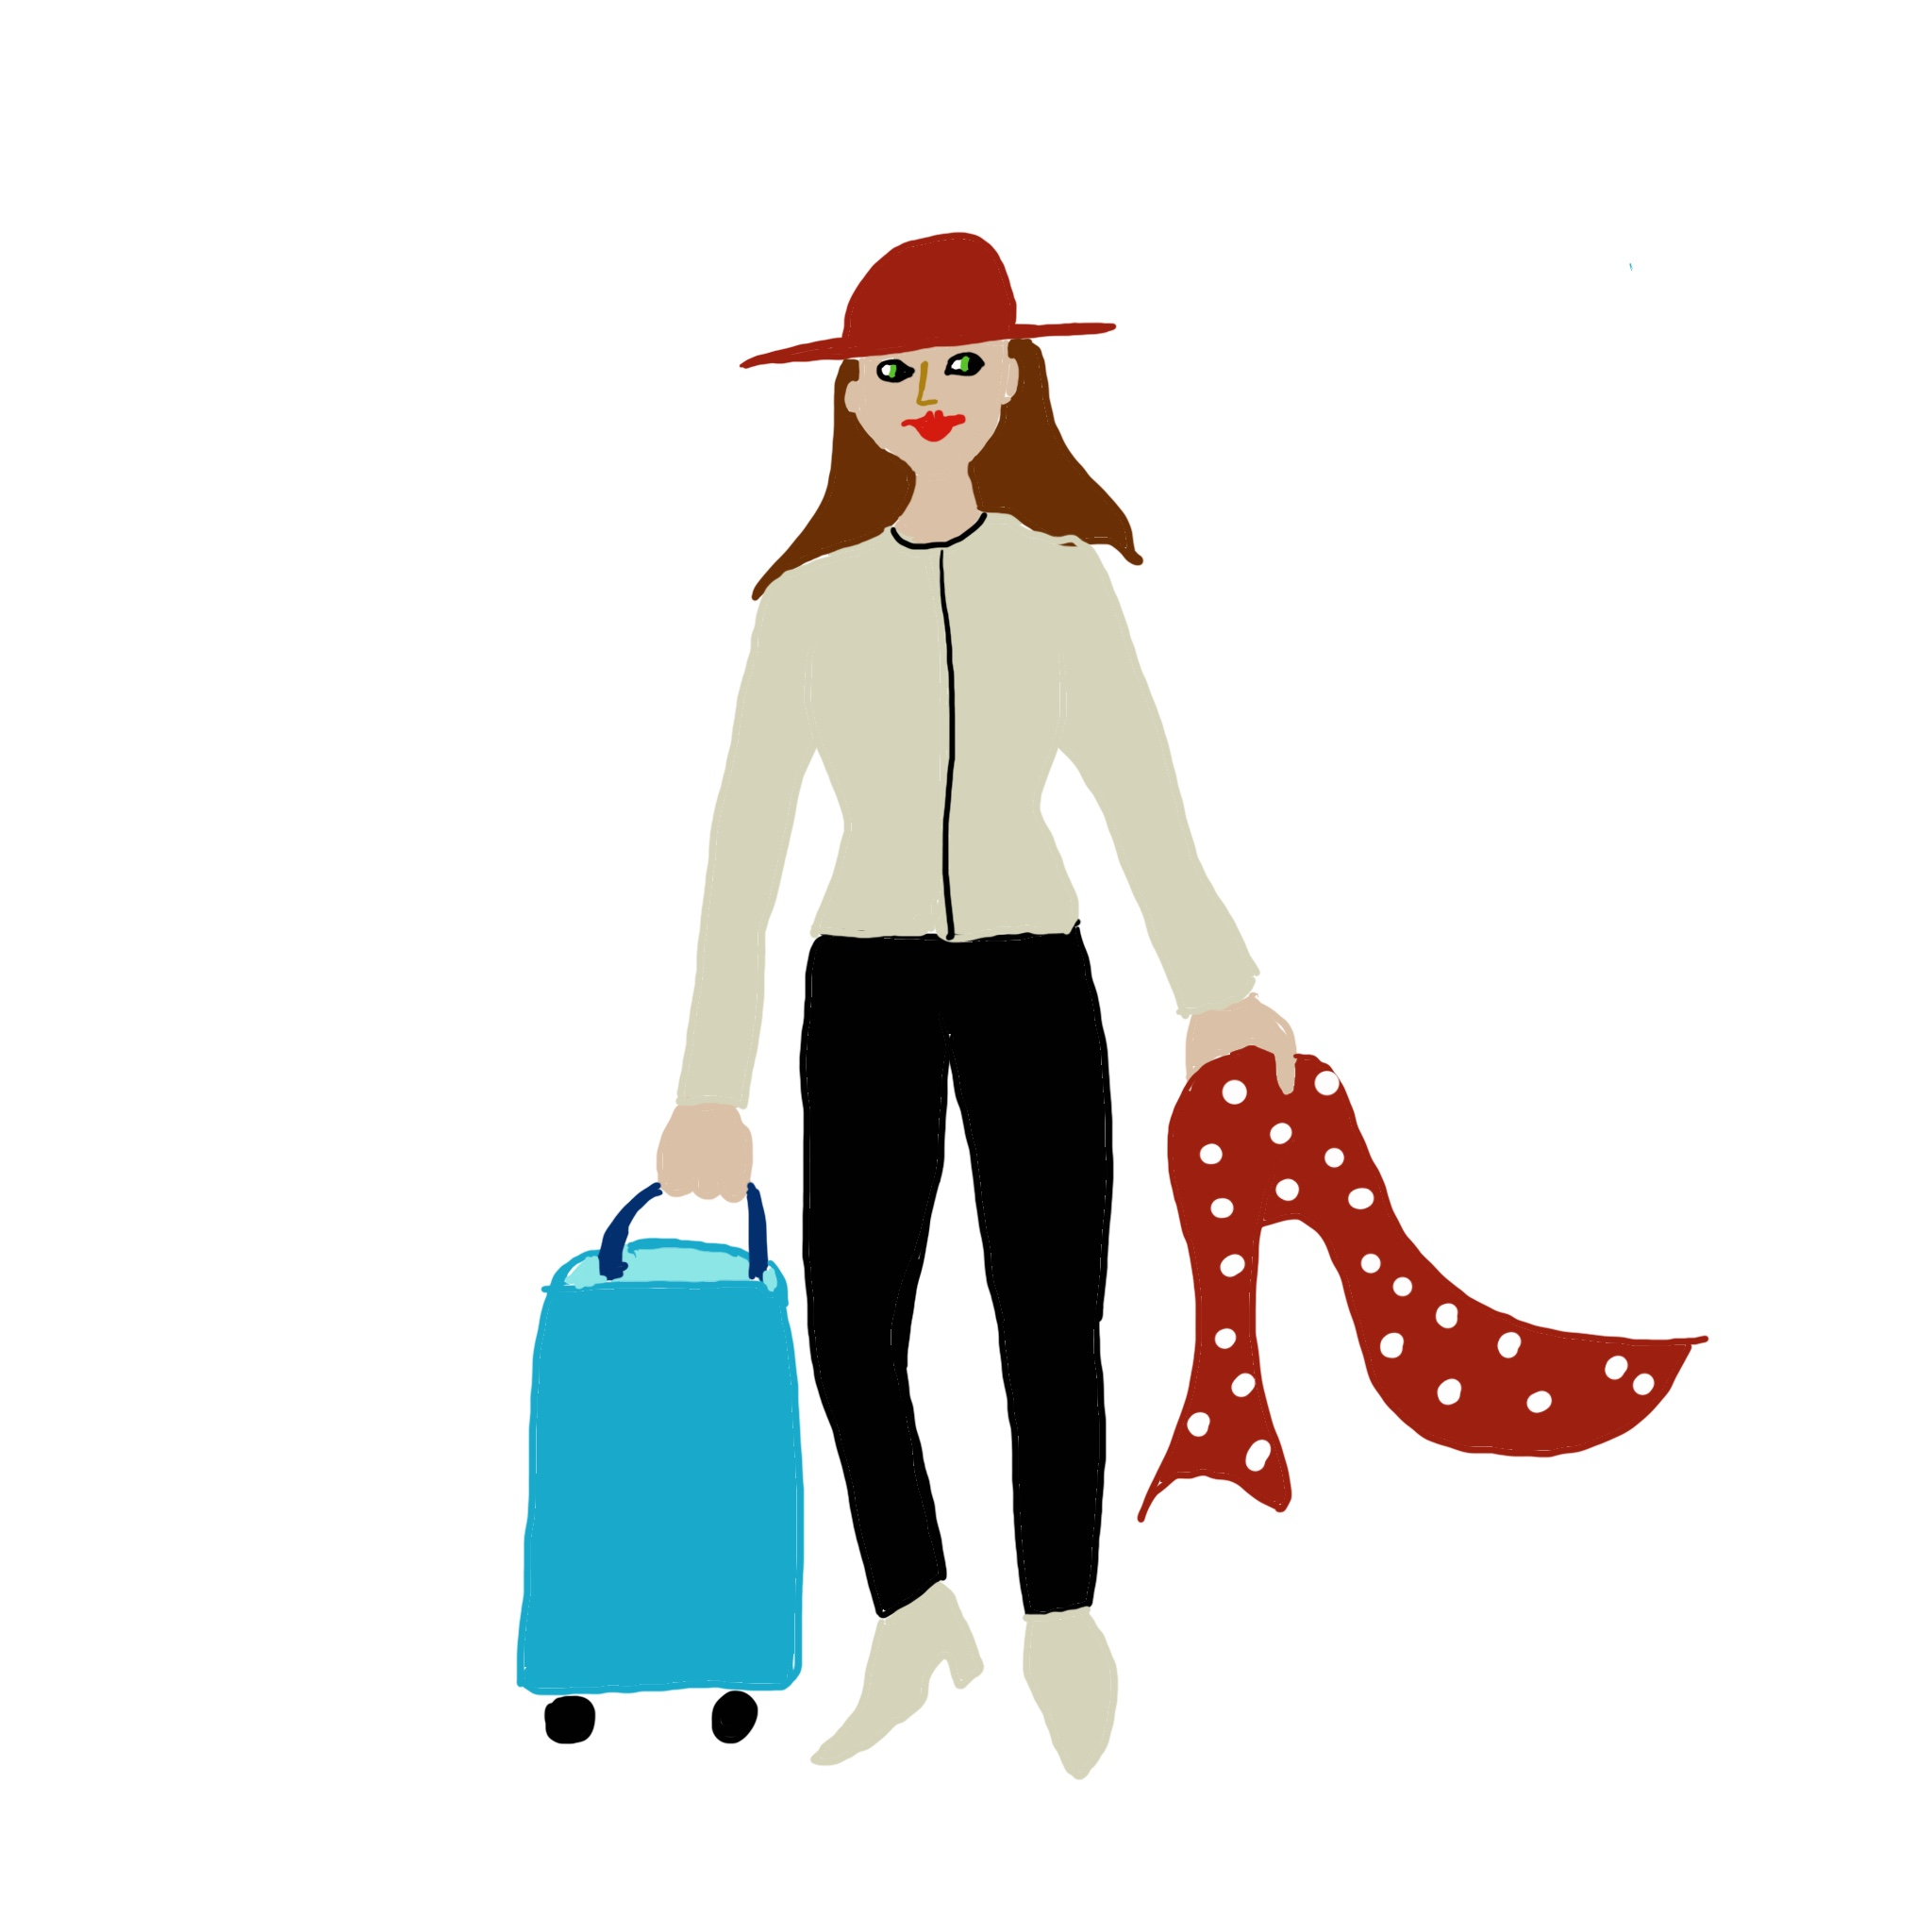 Going on a small group tour? Lighten your luggage load: carry one small bag only.